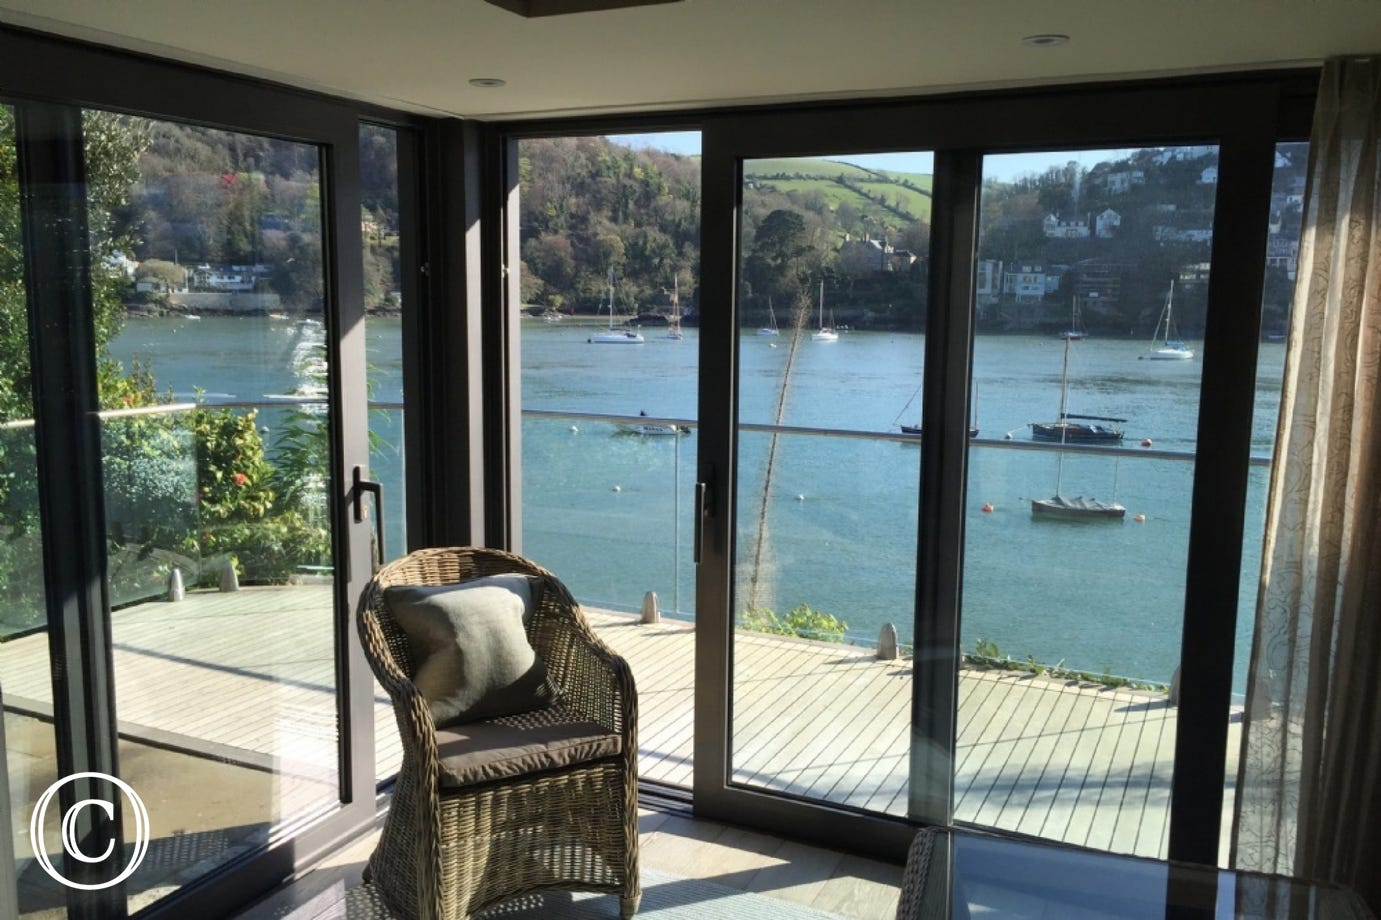 Enjoy the stunning views of the River Dart from the comfort of the living room.